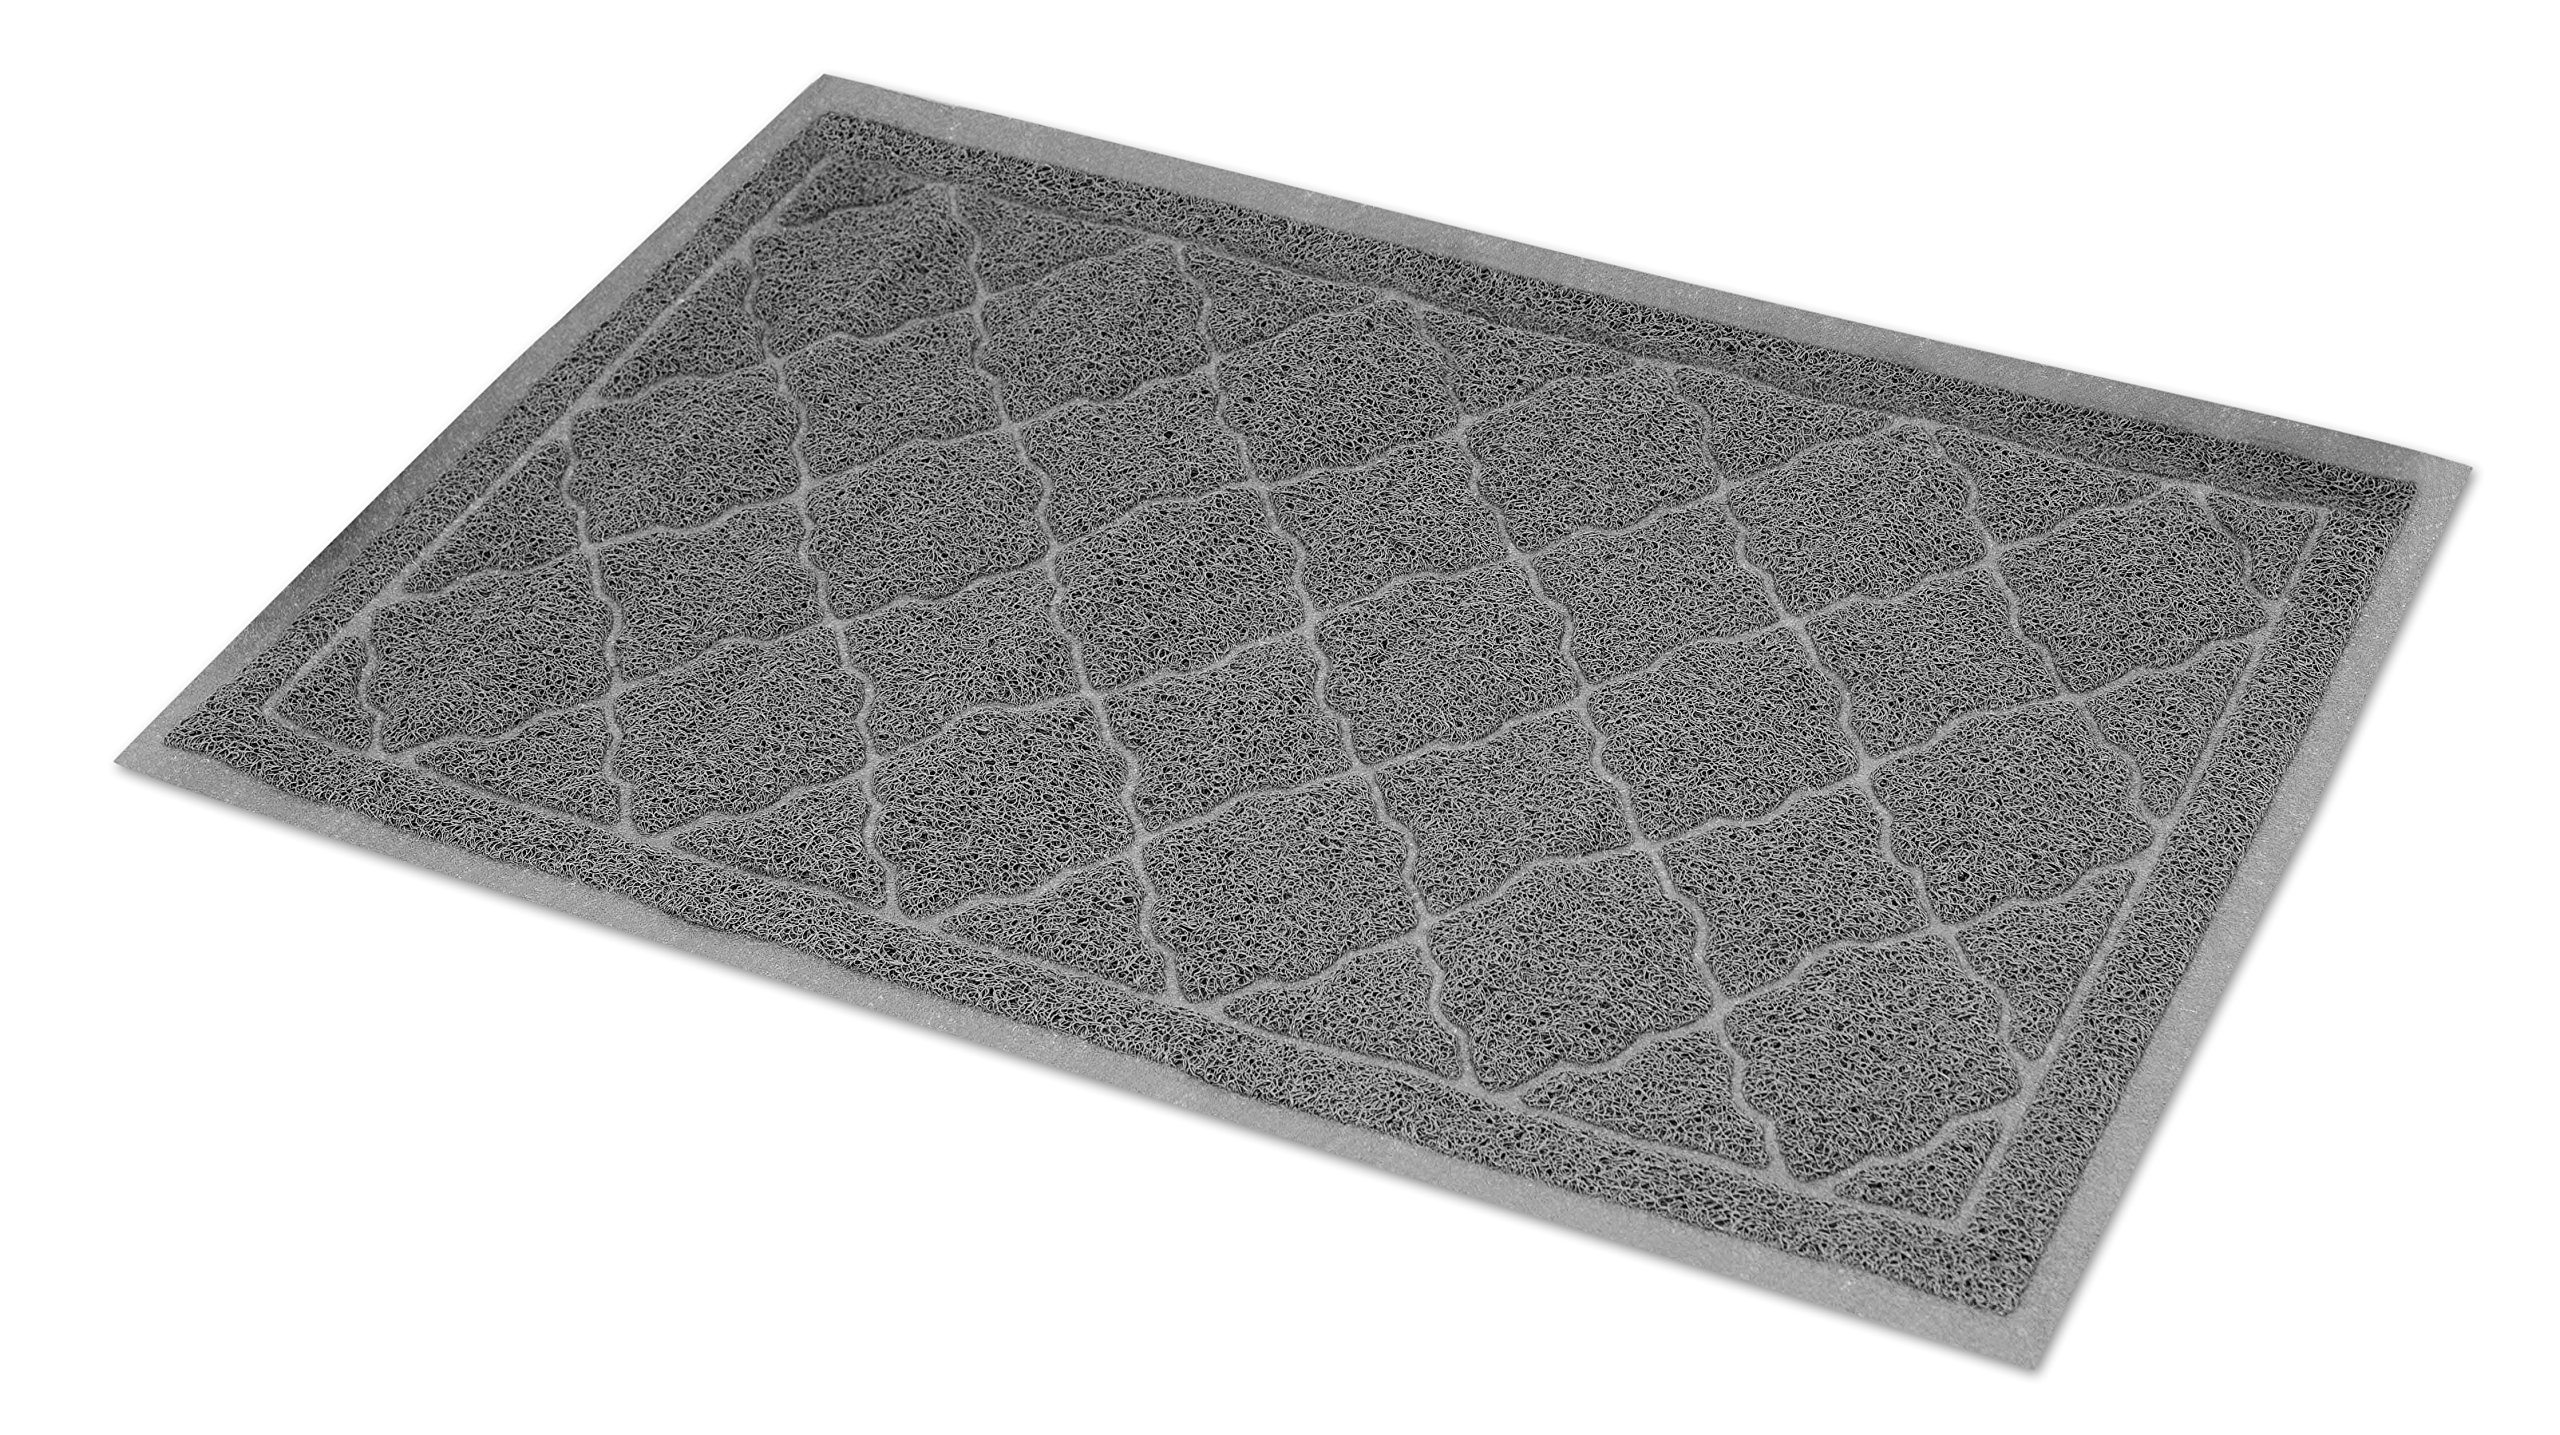 Internet's Best Cat Litter Mat | 35 x 24 | Large | Kitty Litter Mat and Trap | Crystal Catcher Mat and Scatter Control | Soft Paw Touch | Works with Litter Box Cat Houses | Gray